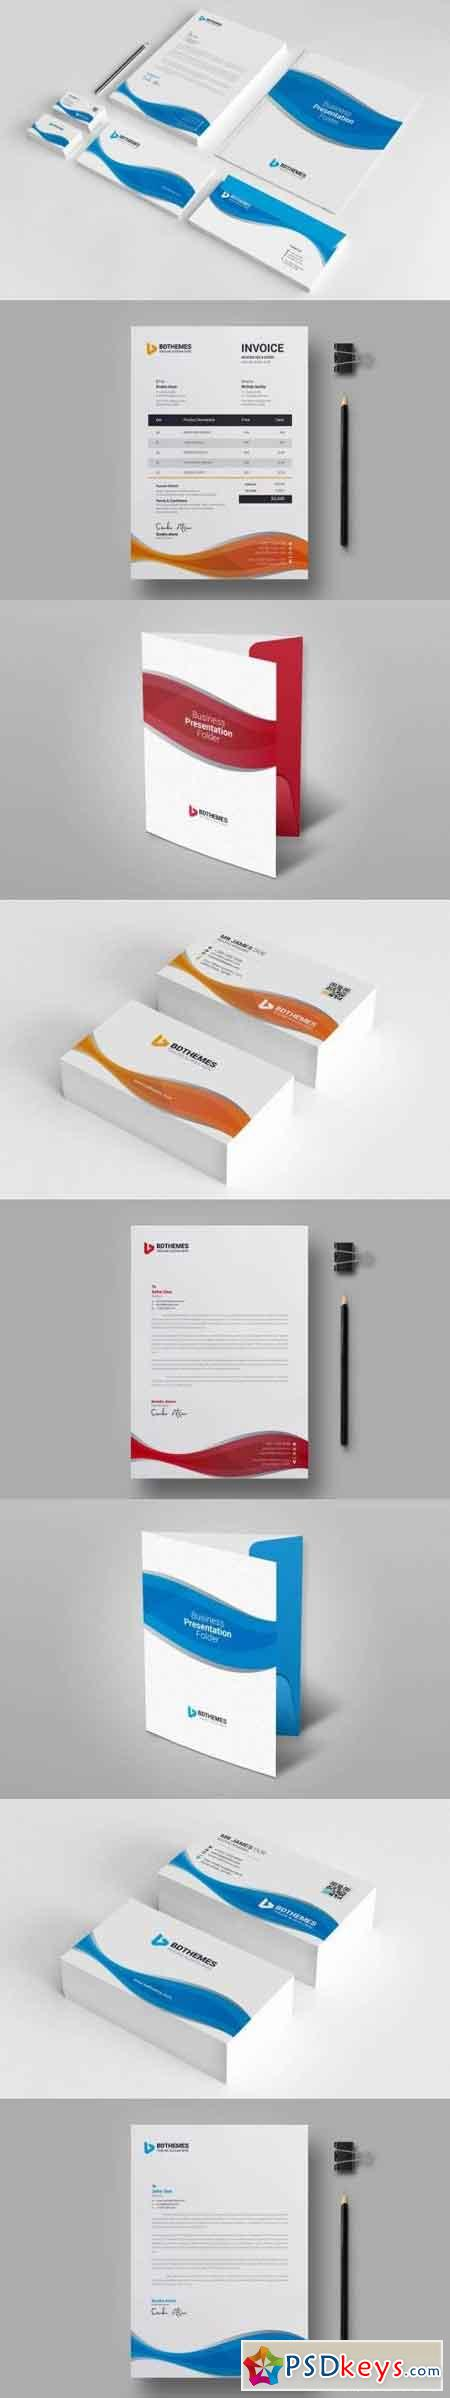 Business Stationery Template 07